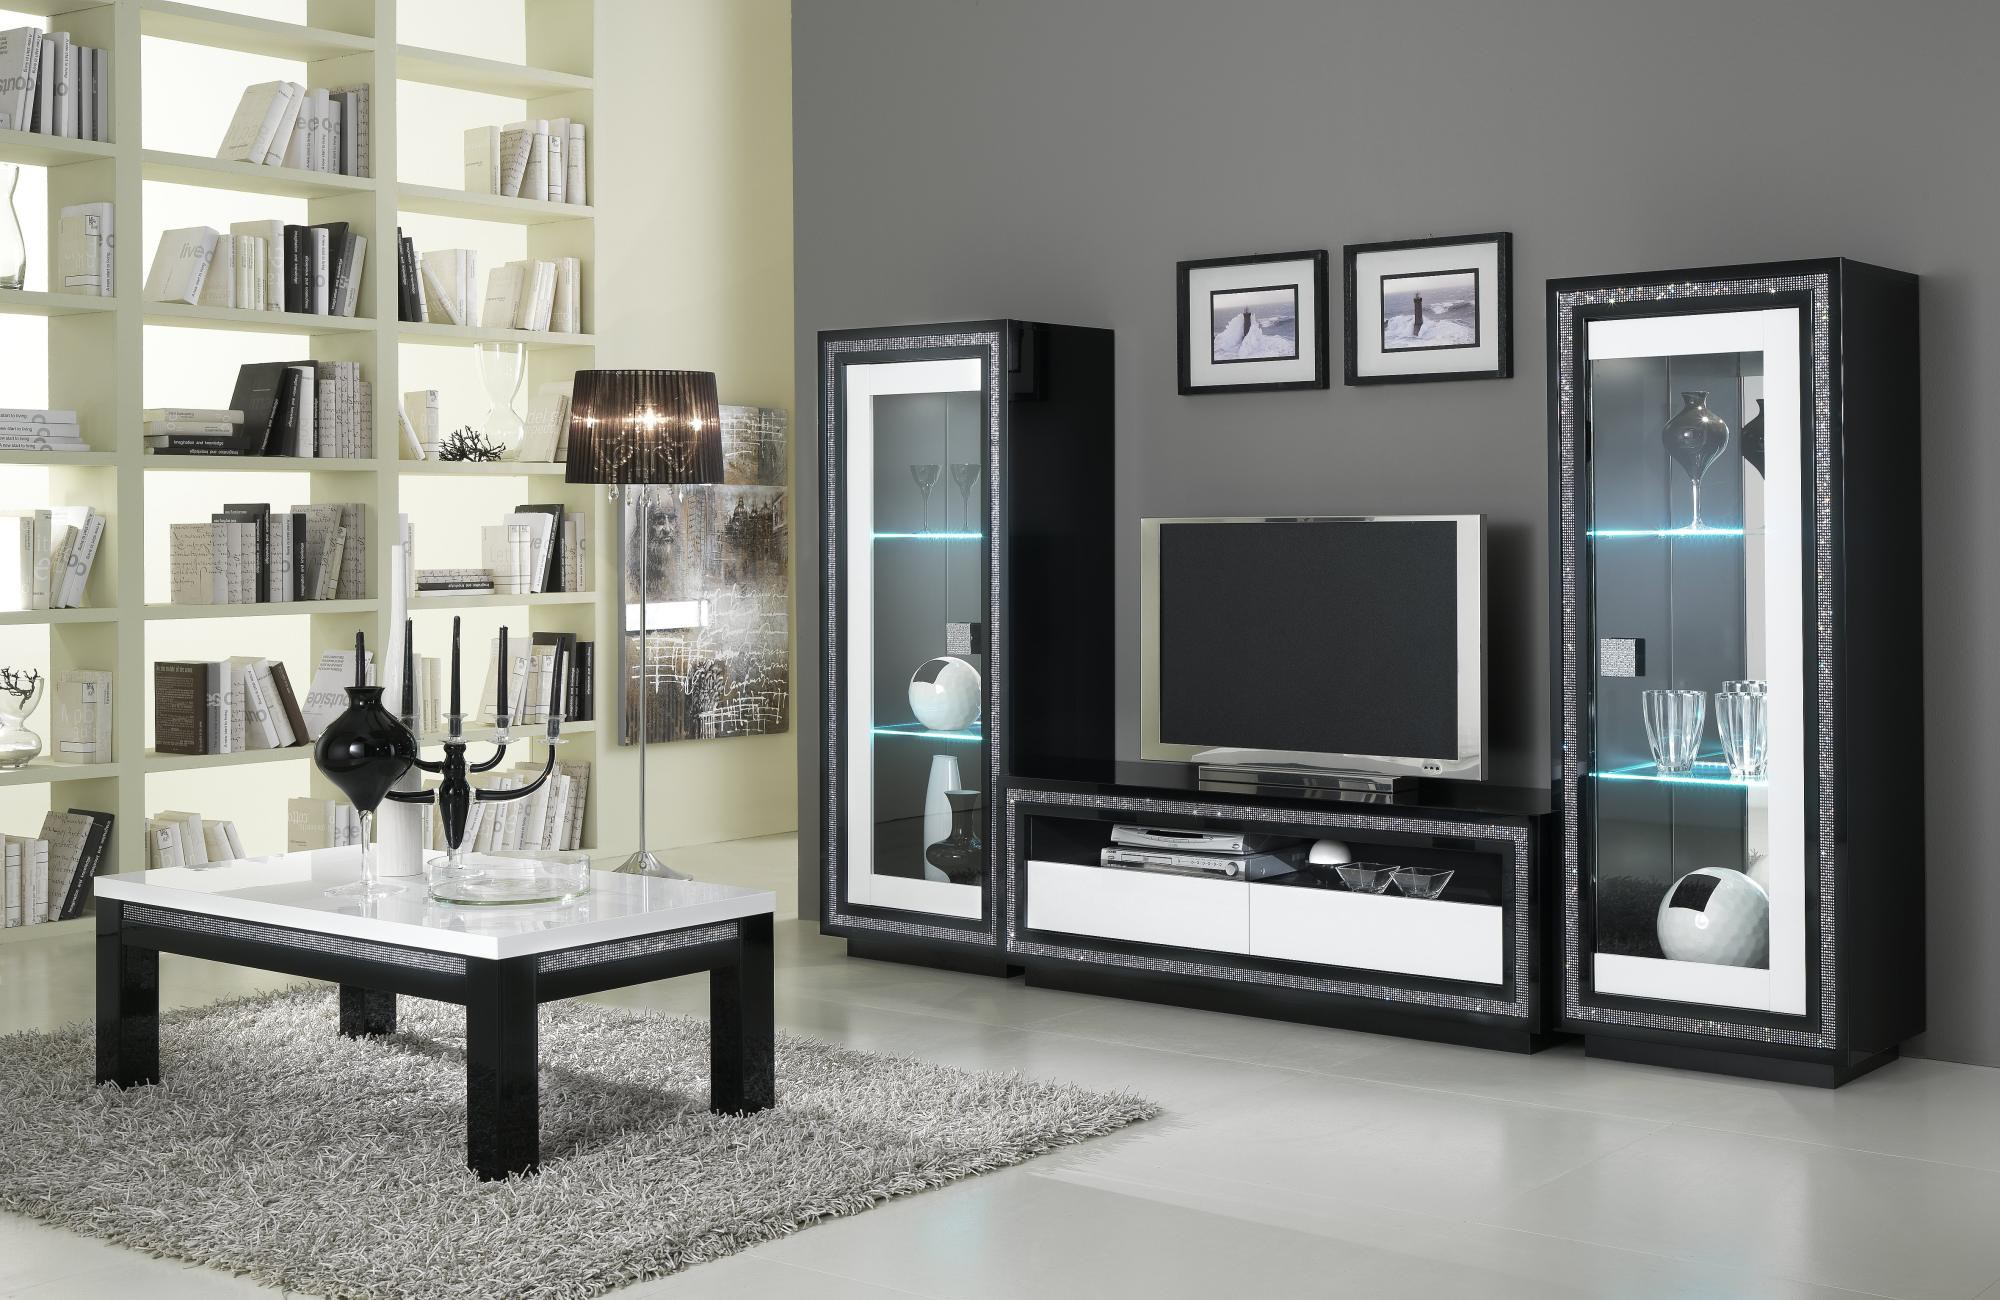 meuble tv design noir et blanc 14 id es de d coration int rieure french decor. Black Bedroom Furniture Sets. Home Design Ideas